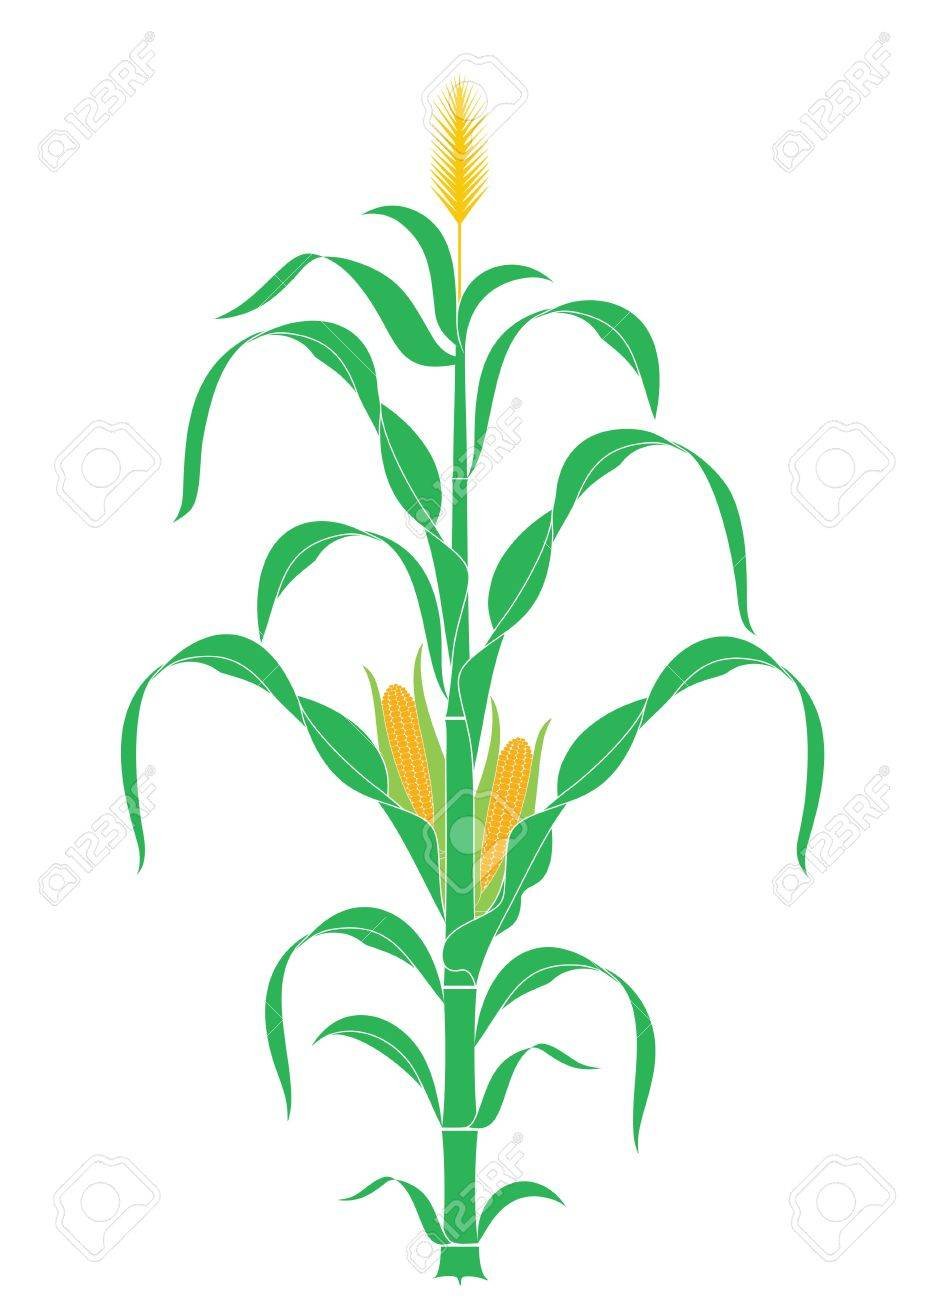 corn stalk plant vector royalty free cliparts vectors and rh 123rf com corn stalk clipart free Corn Clip Art